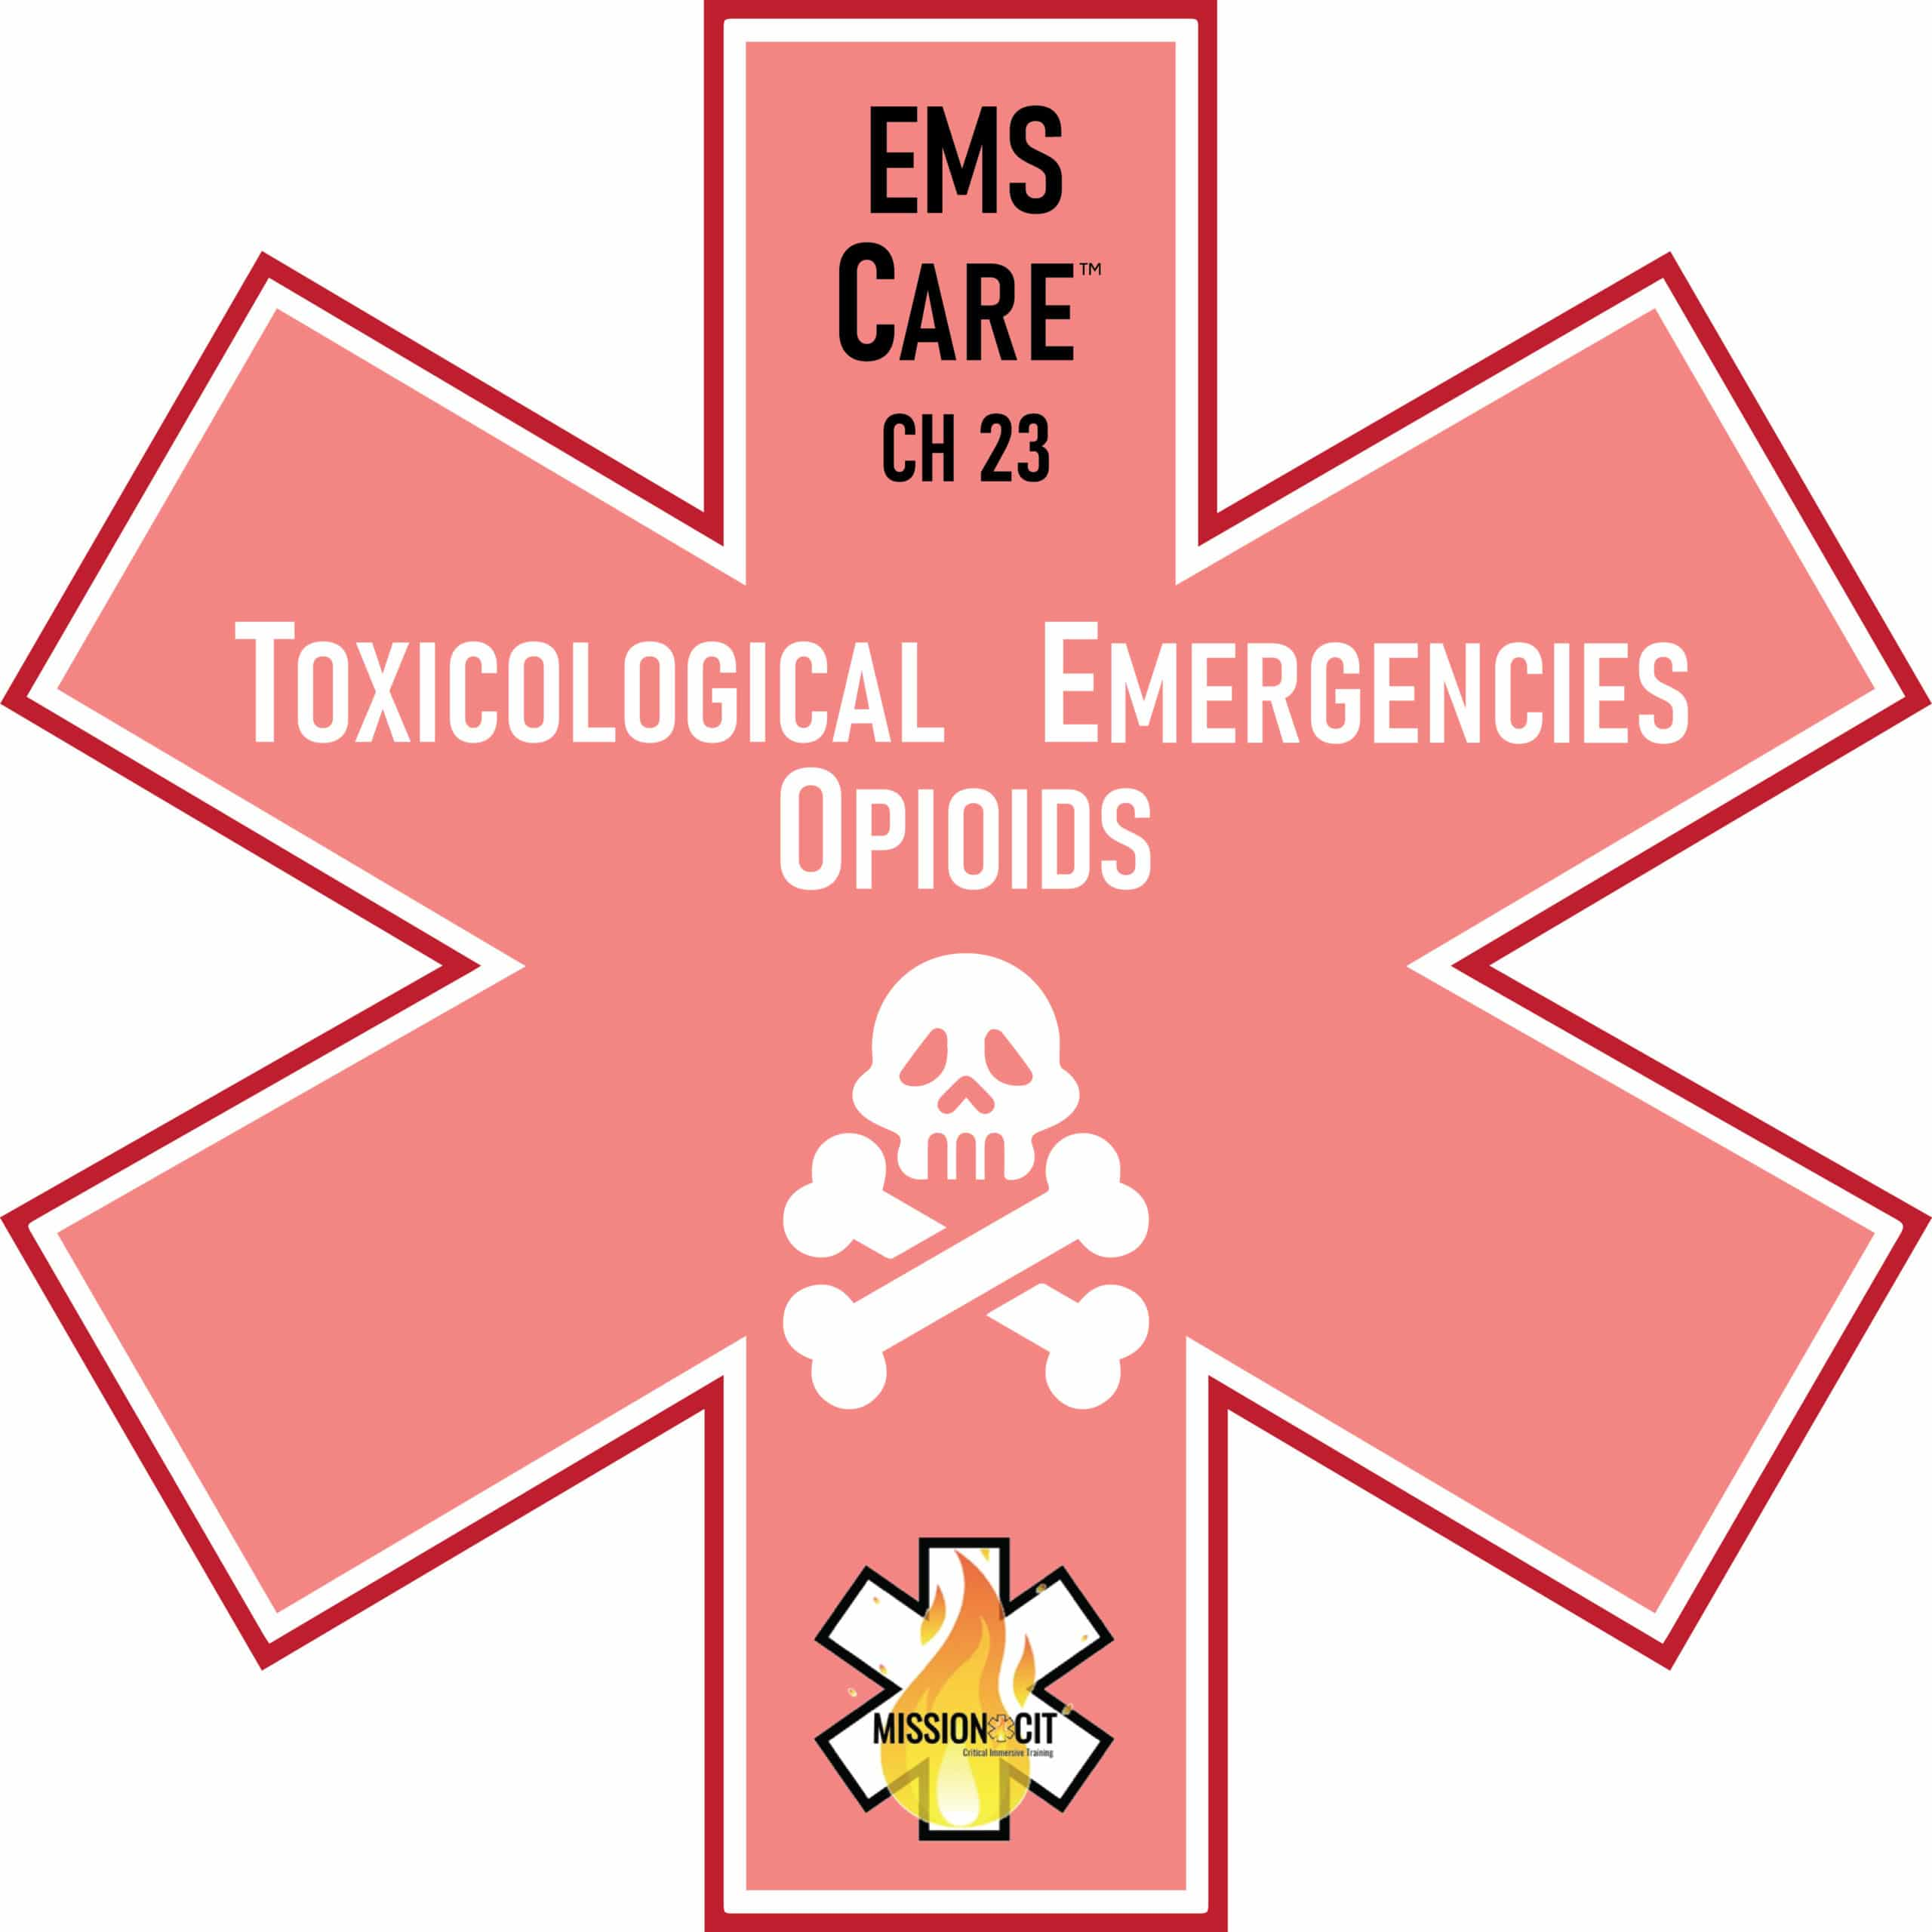 EMS Care Chapter 23 | Toxicological Emergencies | Opioids